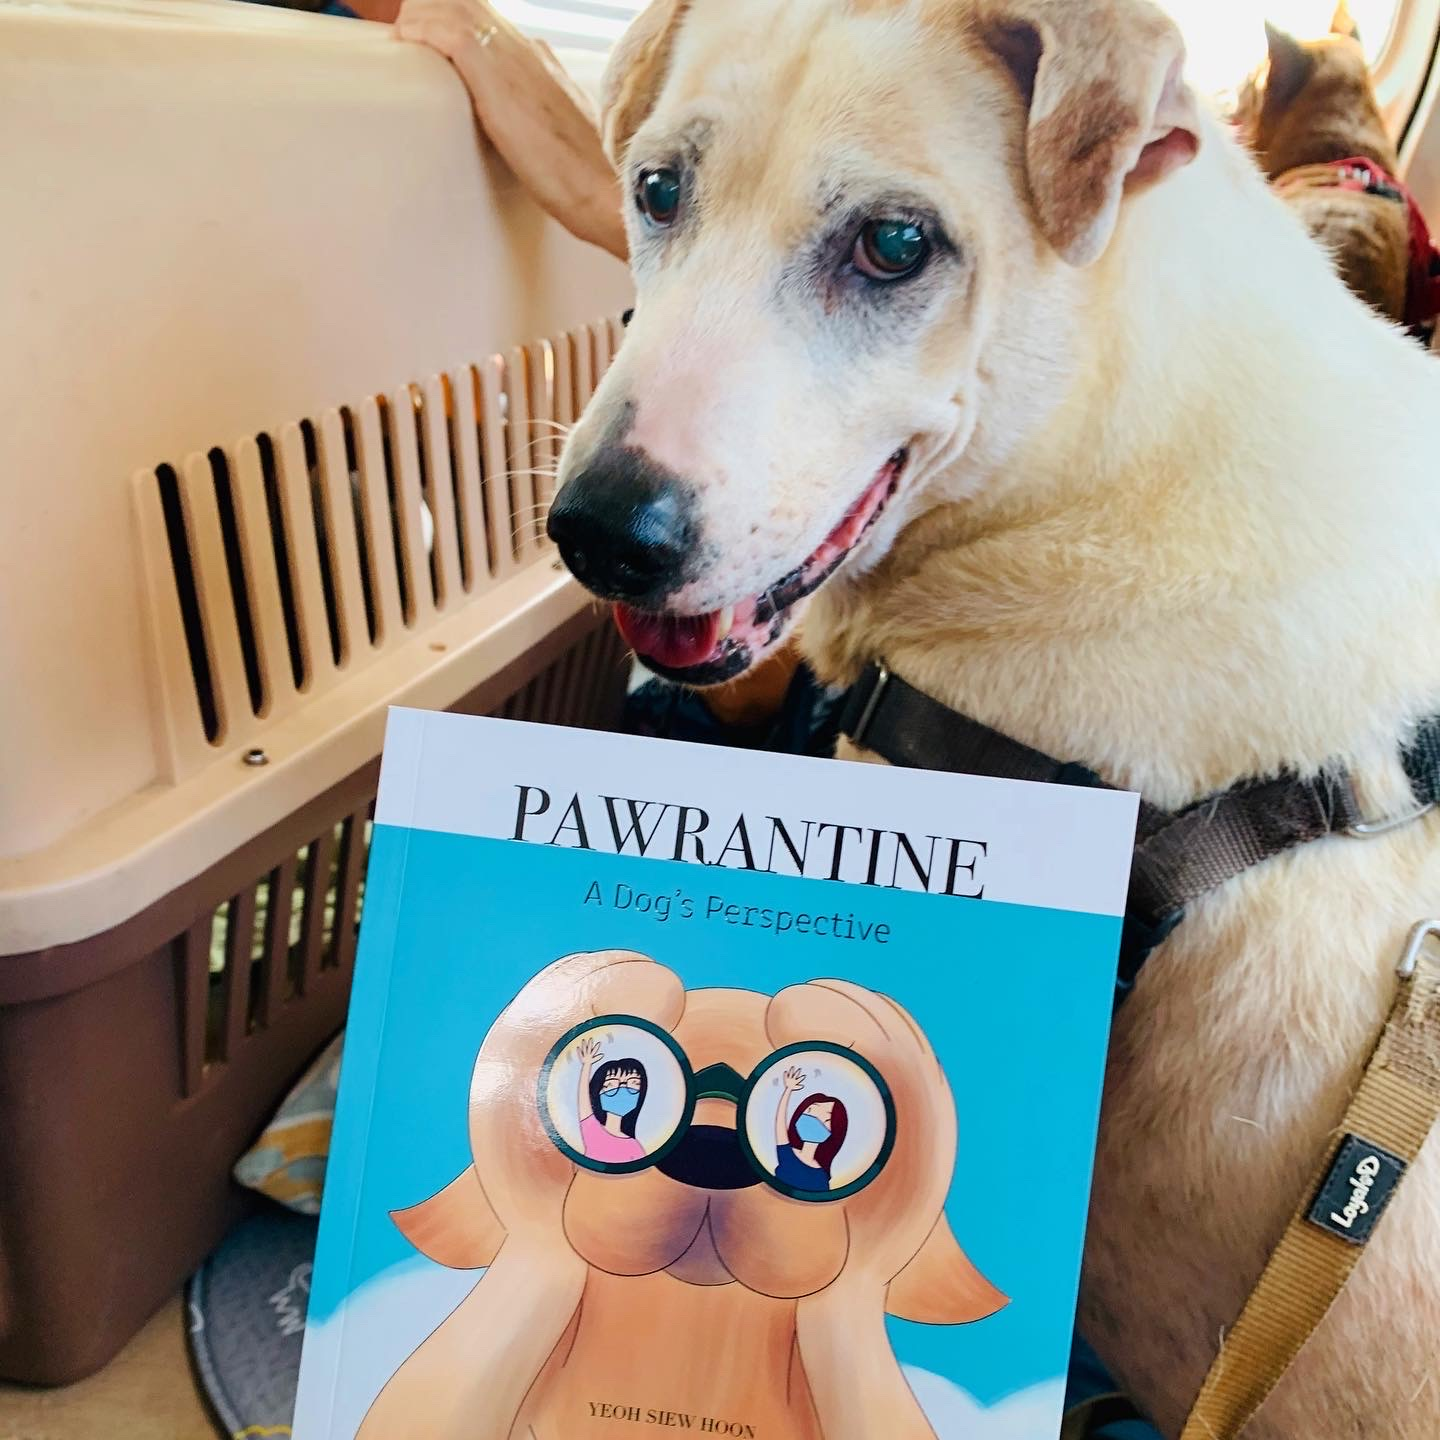 Raisin with Pawrantine book